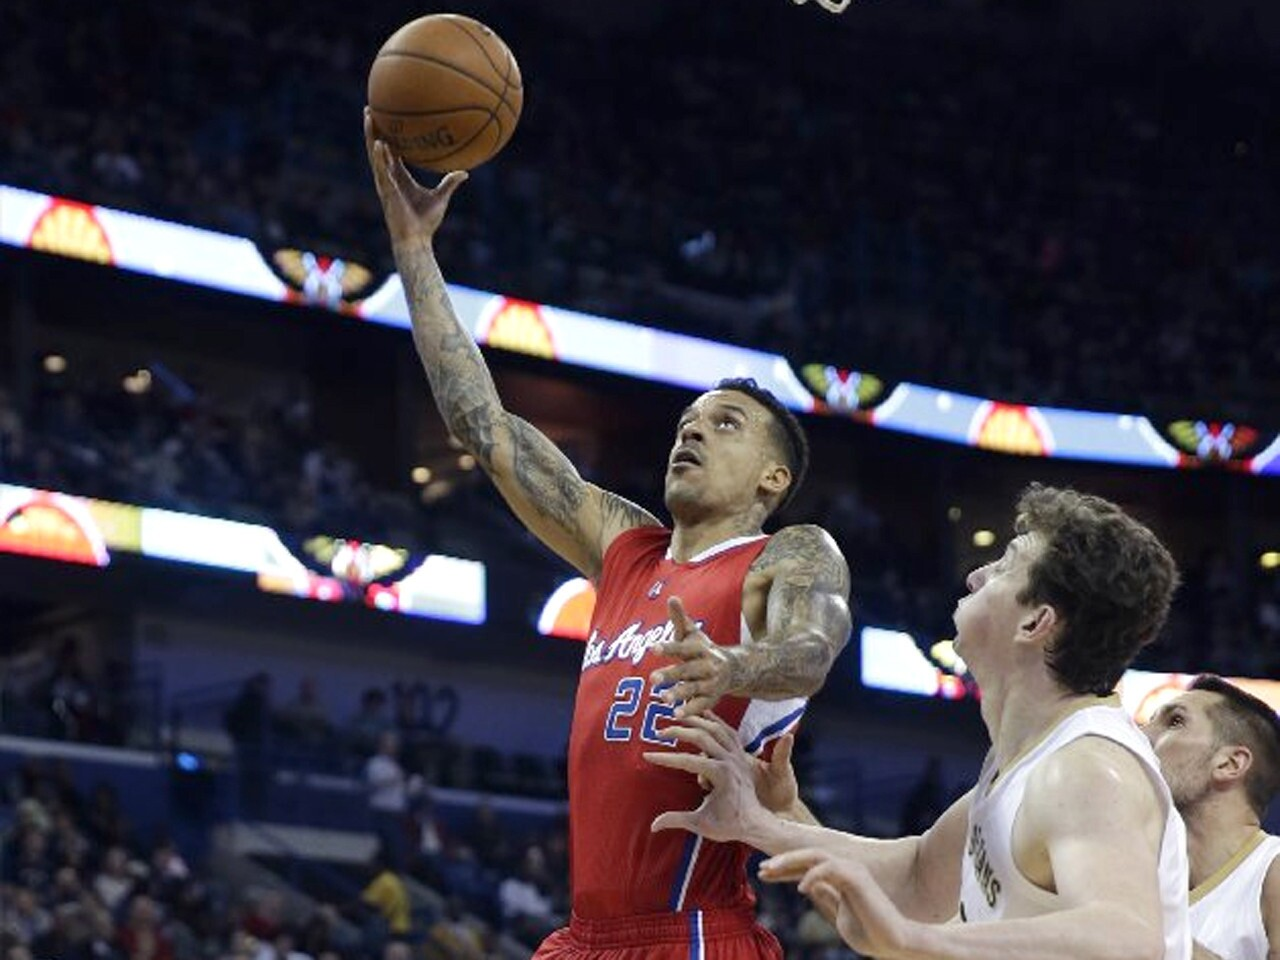 Clippers forward Matt Barnes shoots a layup in front of Pelicans center Omer Asik in the first half.